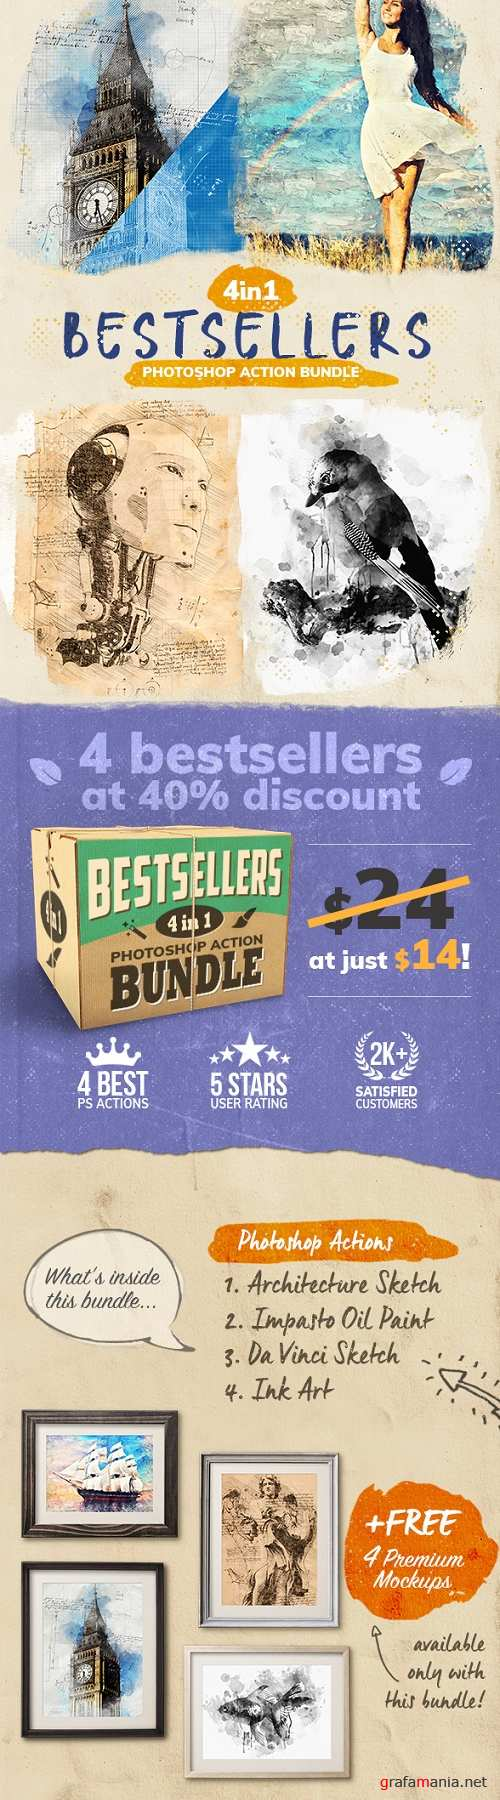 4-in-1 Bestsellers Photoshop Action Bundle - 24937777